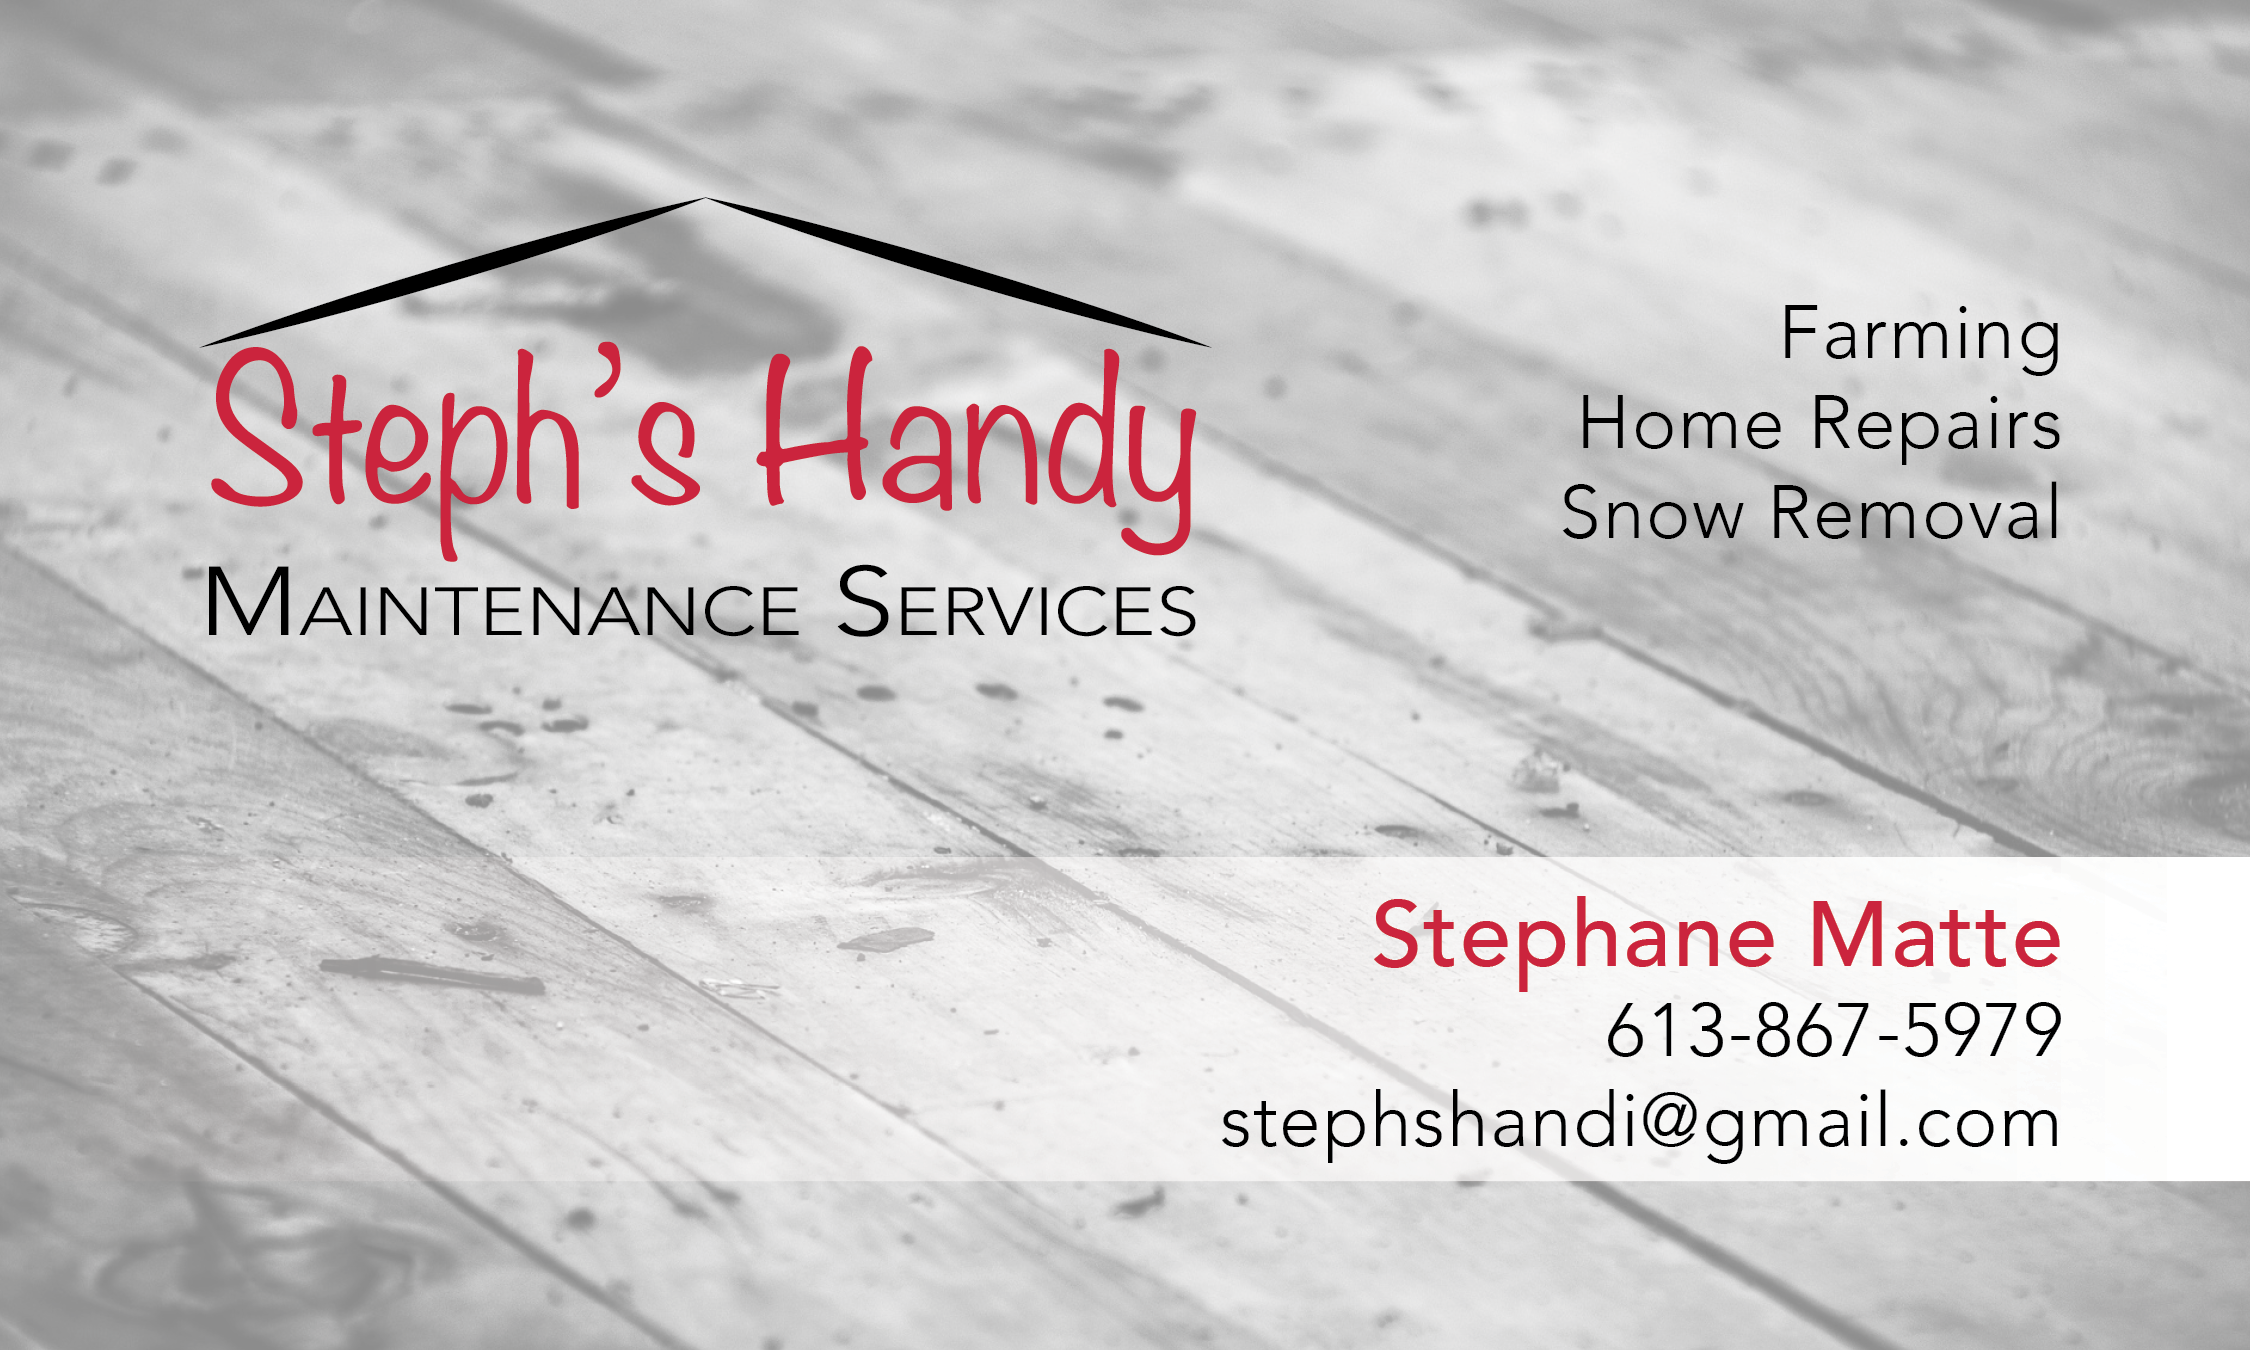 Steph's Handy Maintenance Services